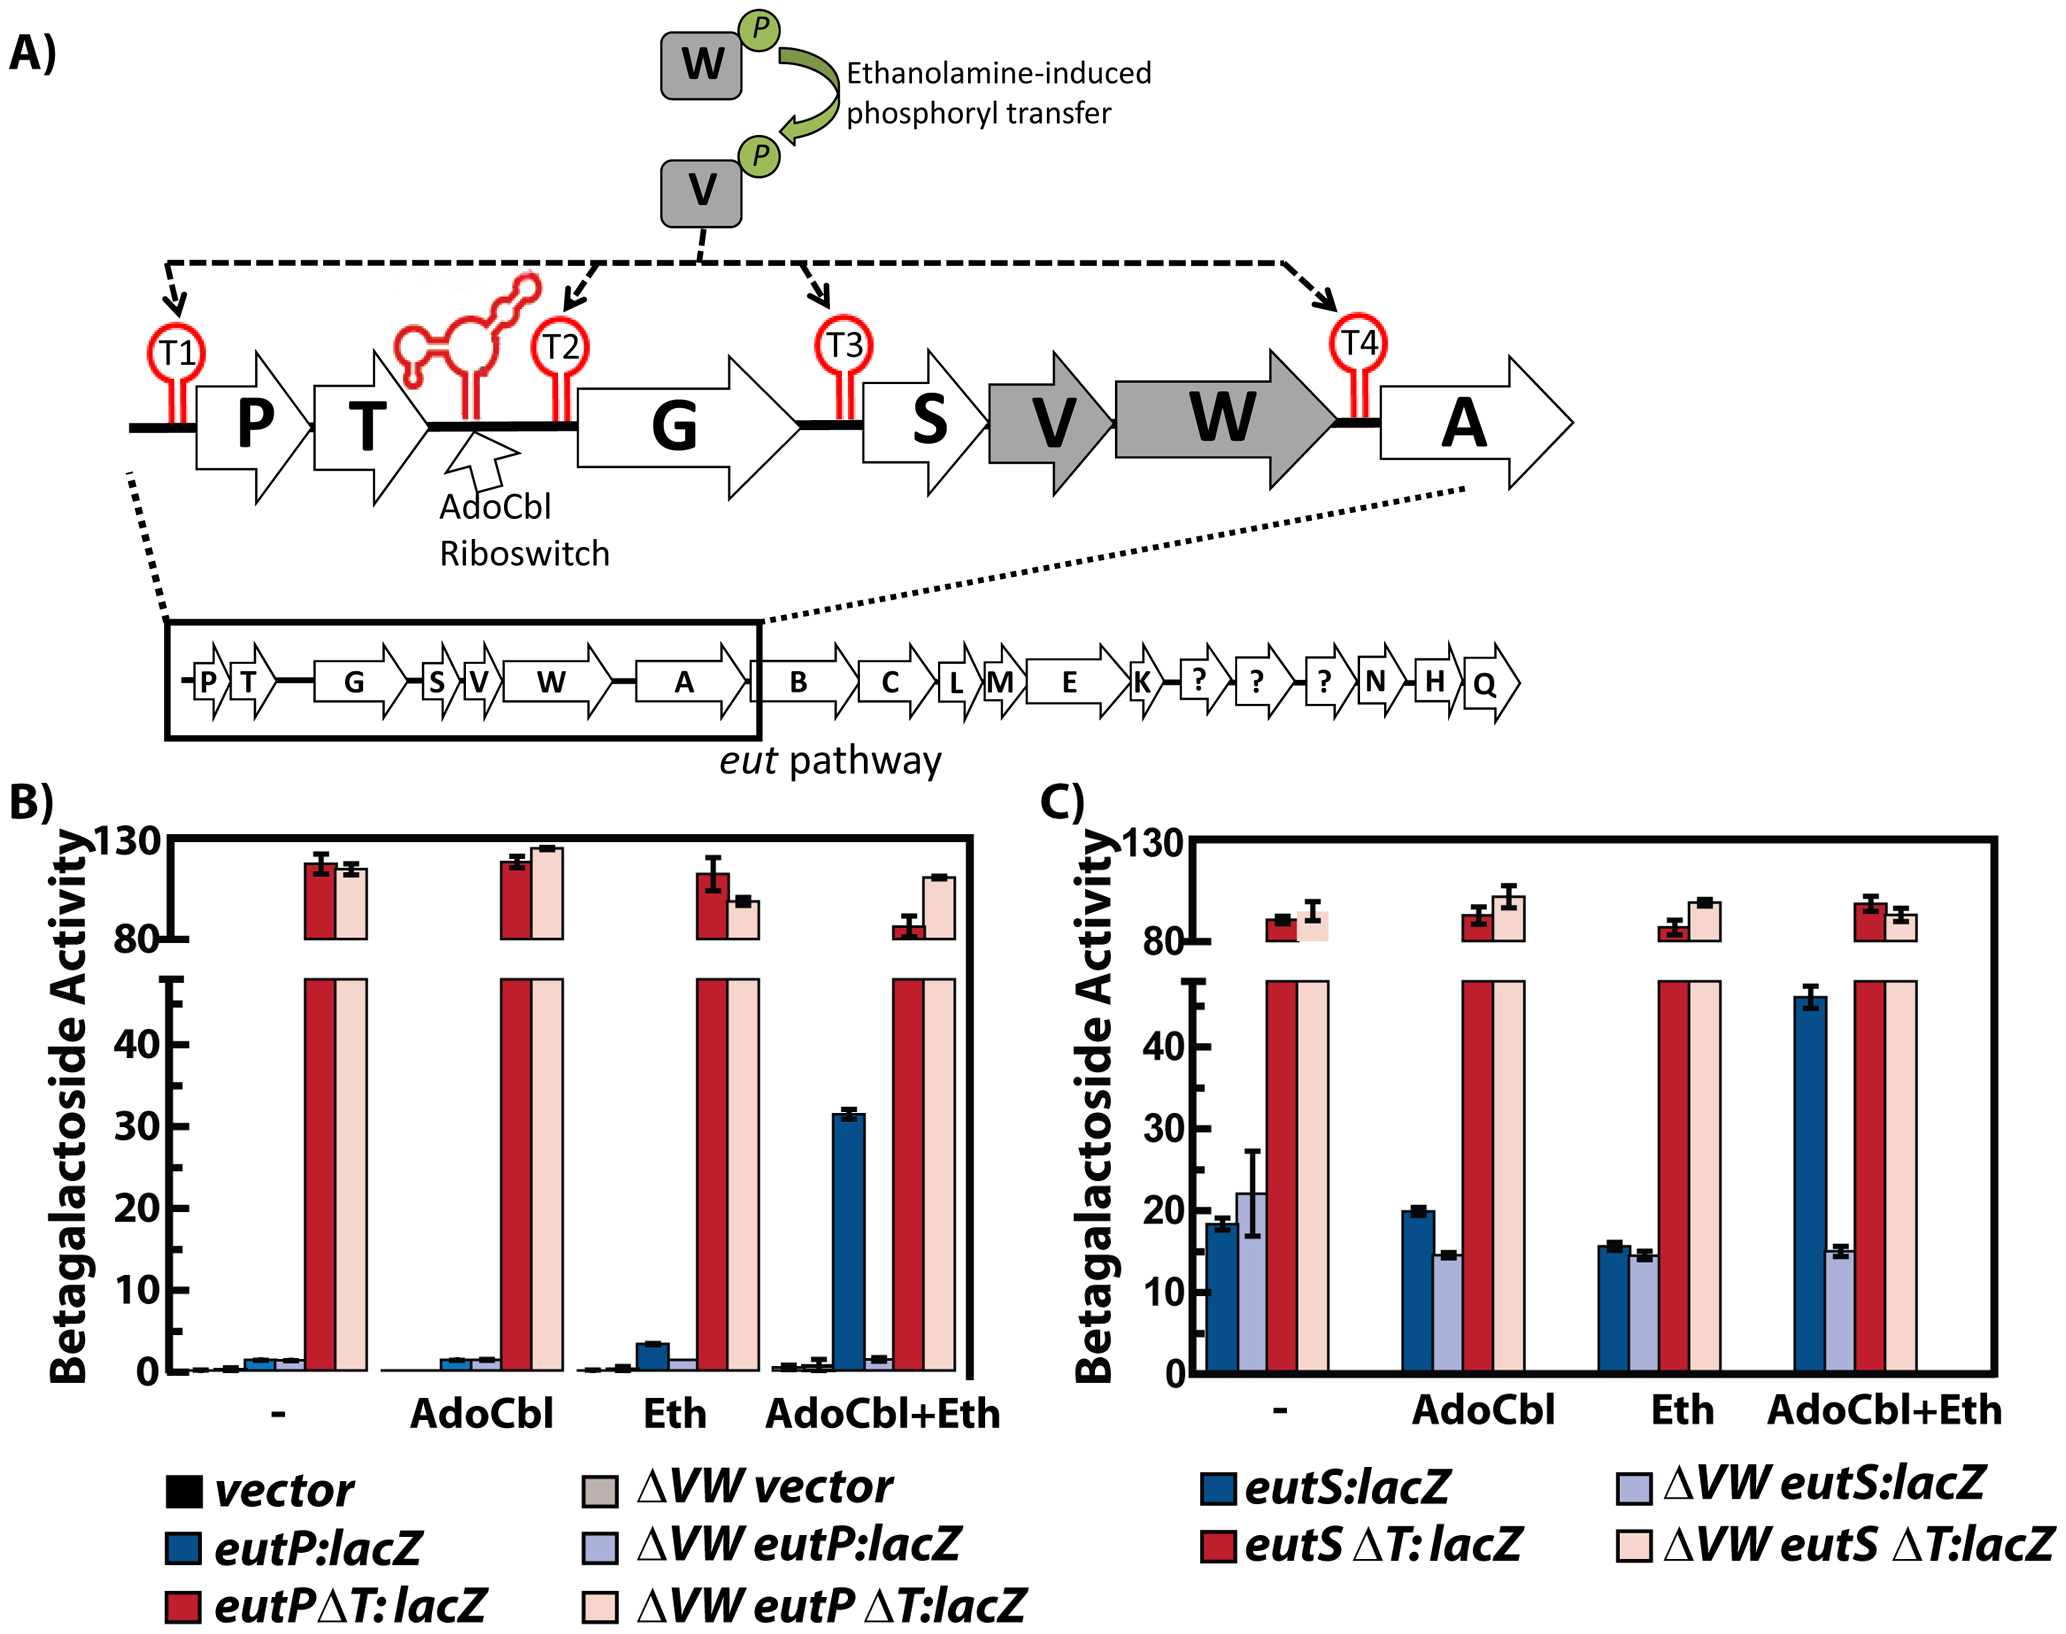 Multiple input signals, along with protein and RNA elements, regulate the <i>eut</i> locus in <i>Enterococcus faecalis</i>.